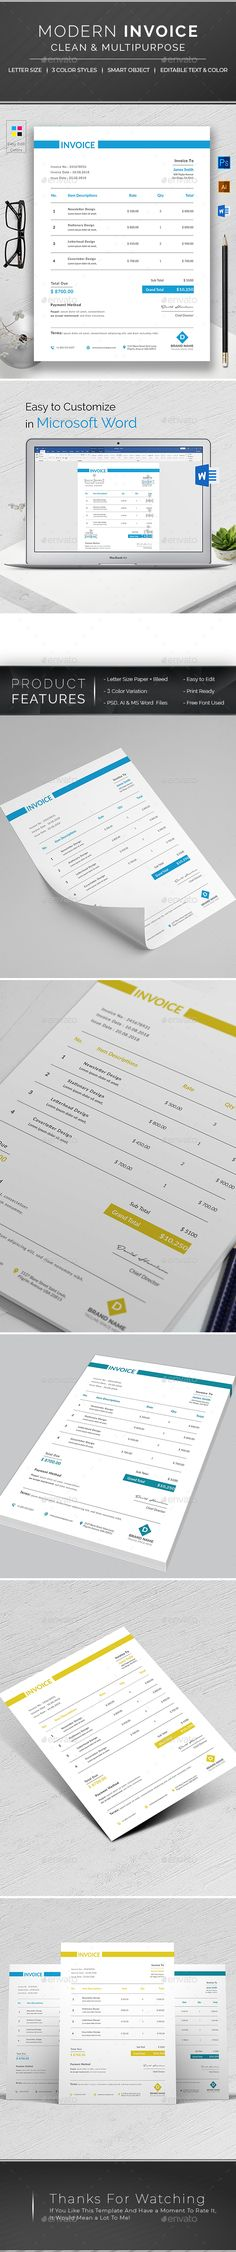 Design Source by CreativeZoom on Etsy Company Invoice Templates